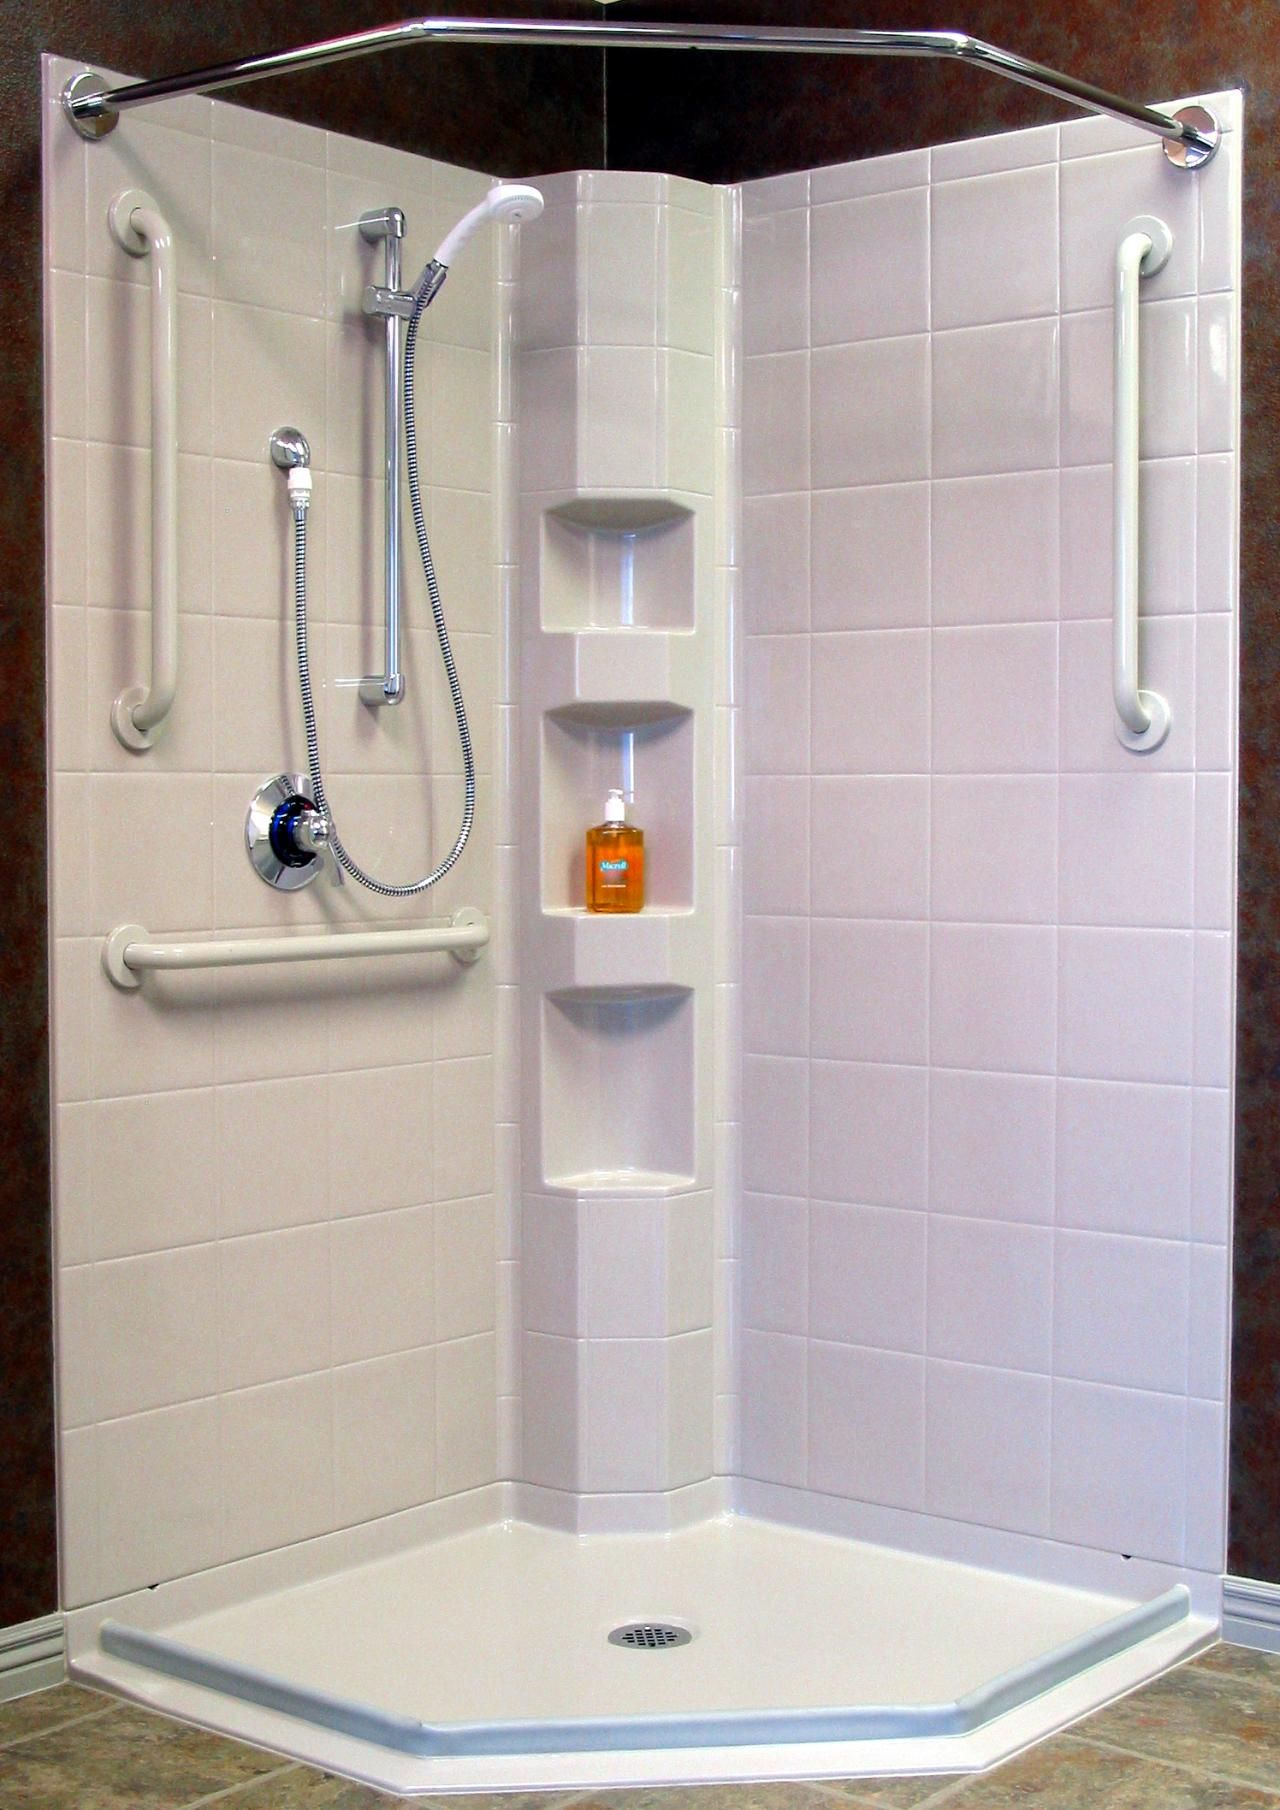 Handicap Accessible Bathroom Equipment walk-in showers for seniors | best bath barrier-free shower